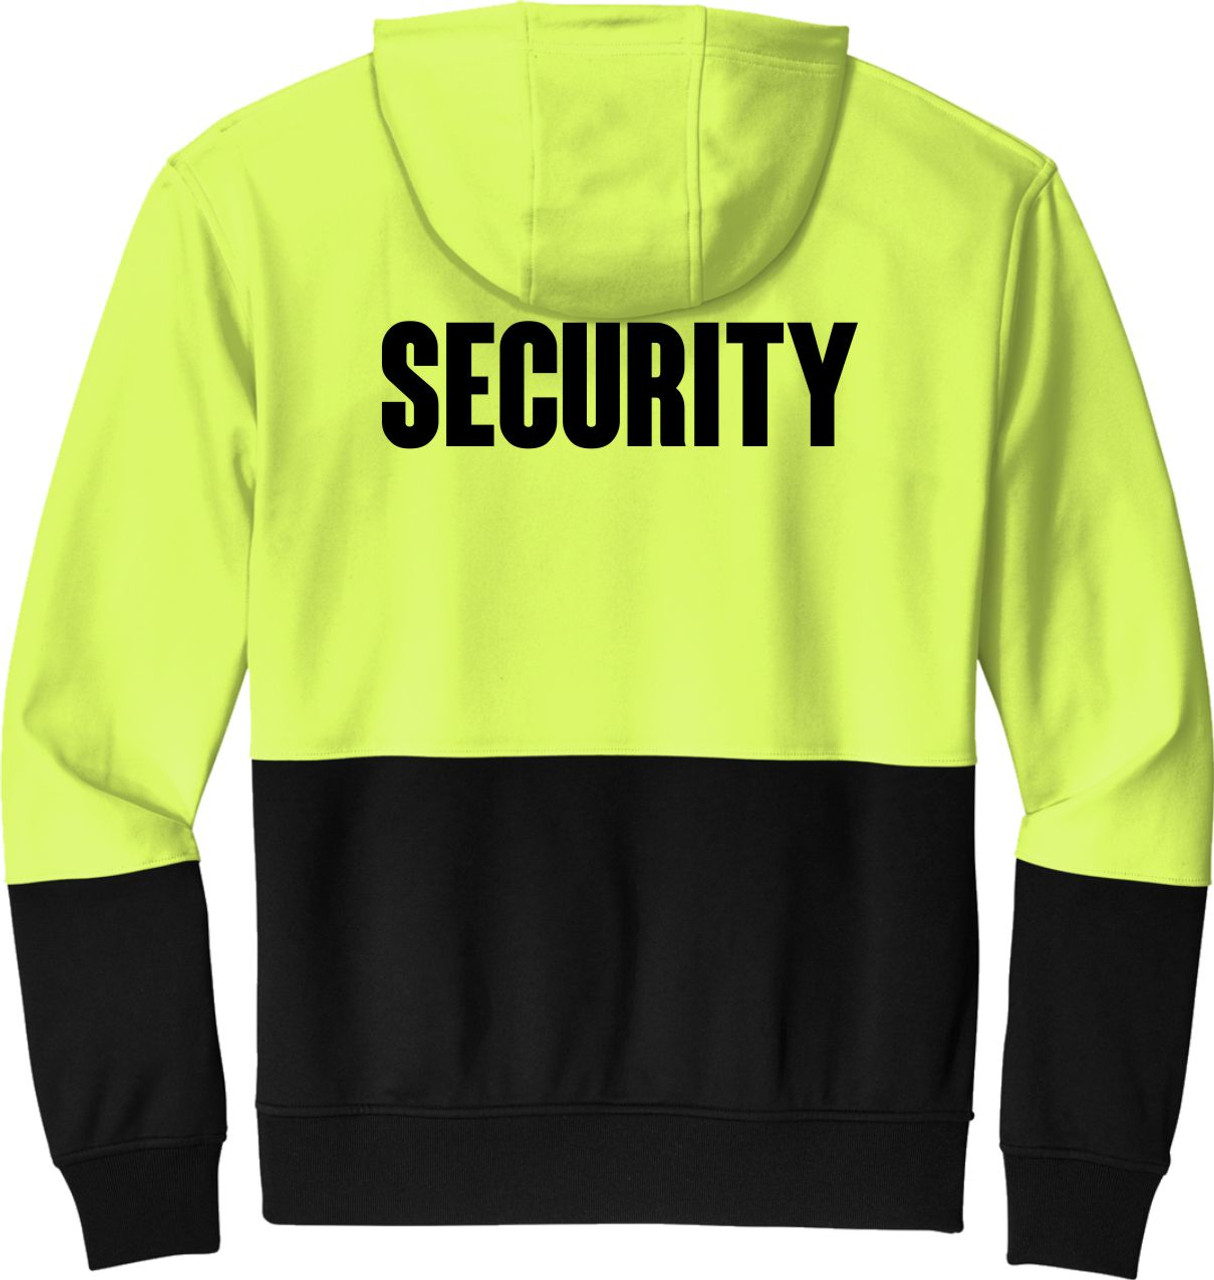 Security Hoodie Safety Yellow and Black   Black Bottom Security Hoodie